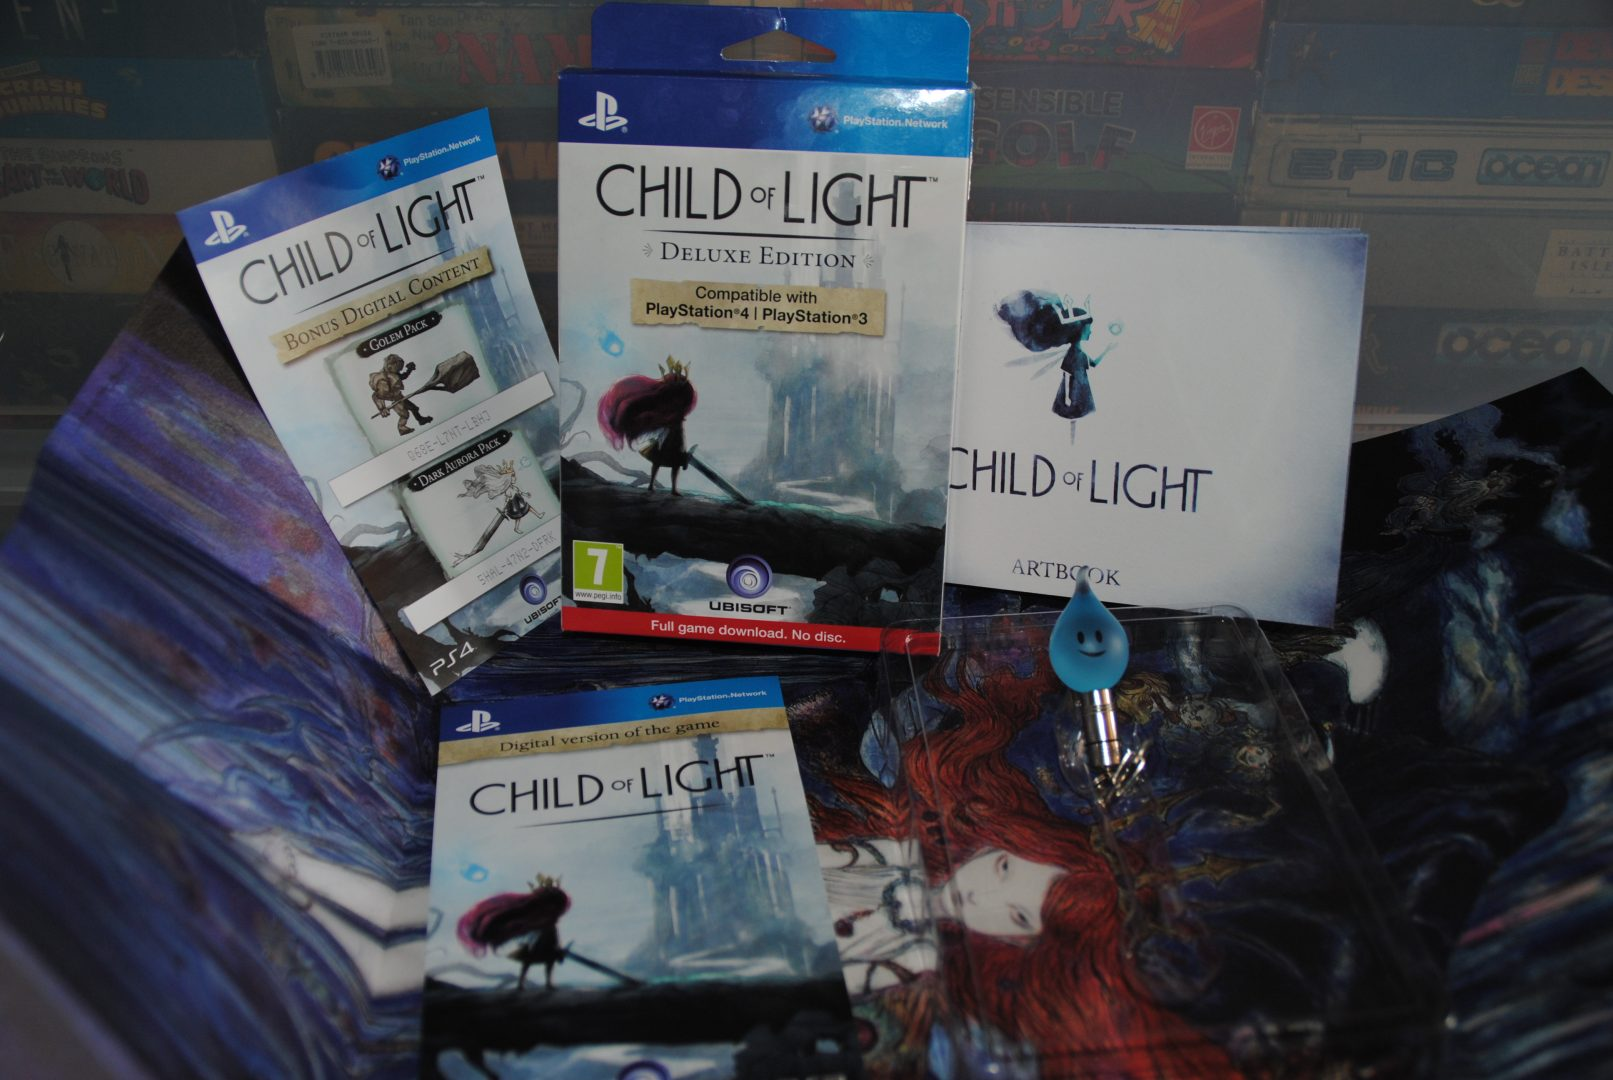 All the stuff inside the retail box. no blu-ray disk was included sadly.